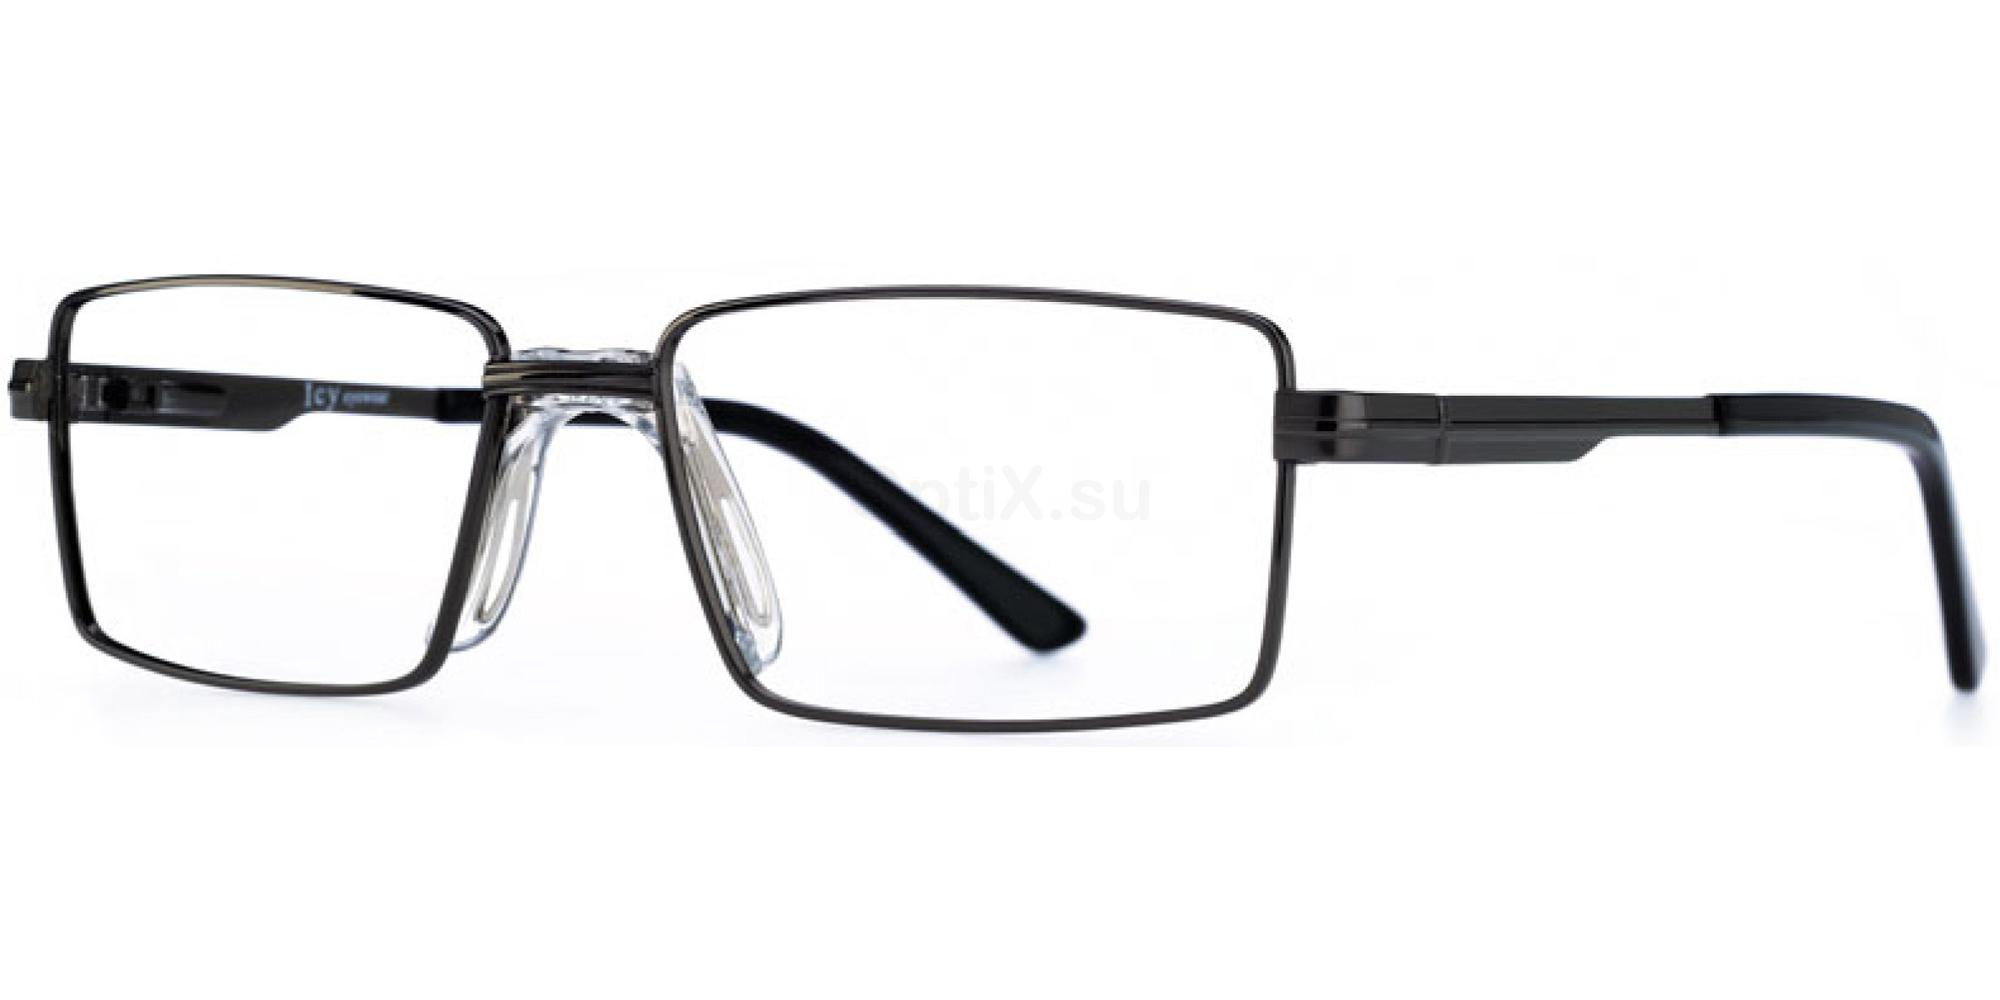 C1 Icy 775 Glasses, Icy Eyewear - Metals